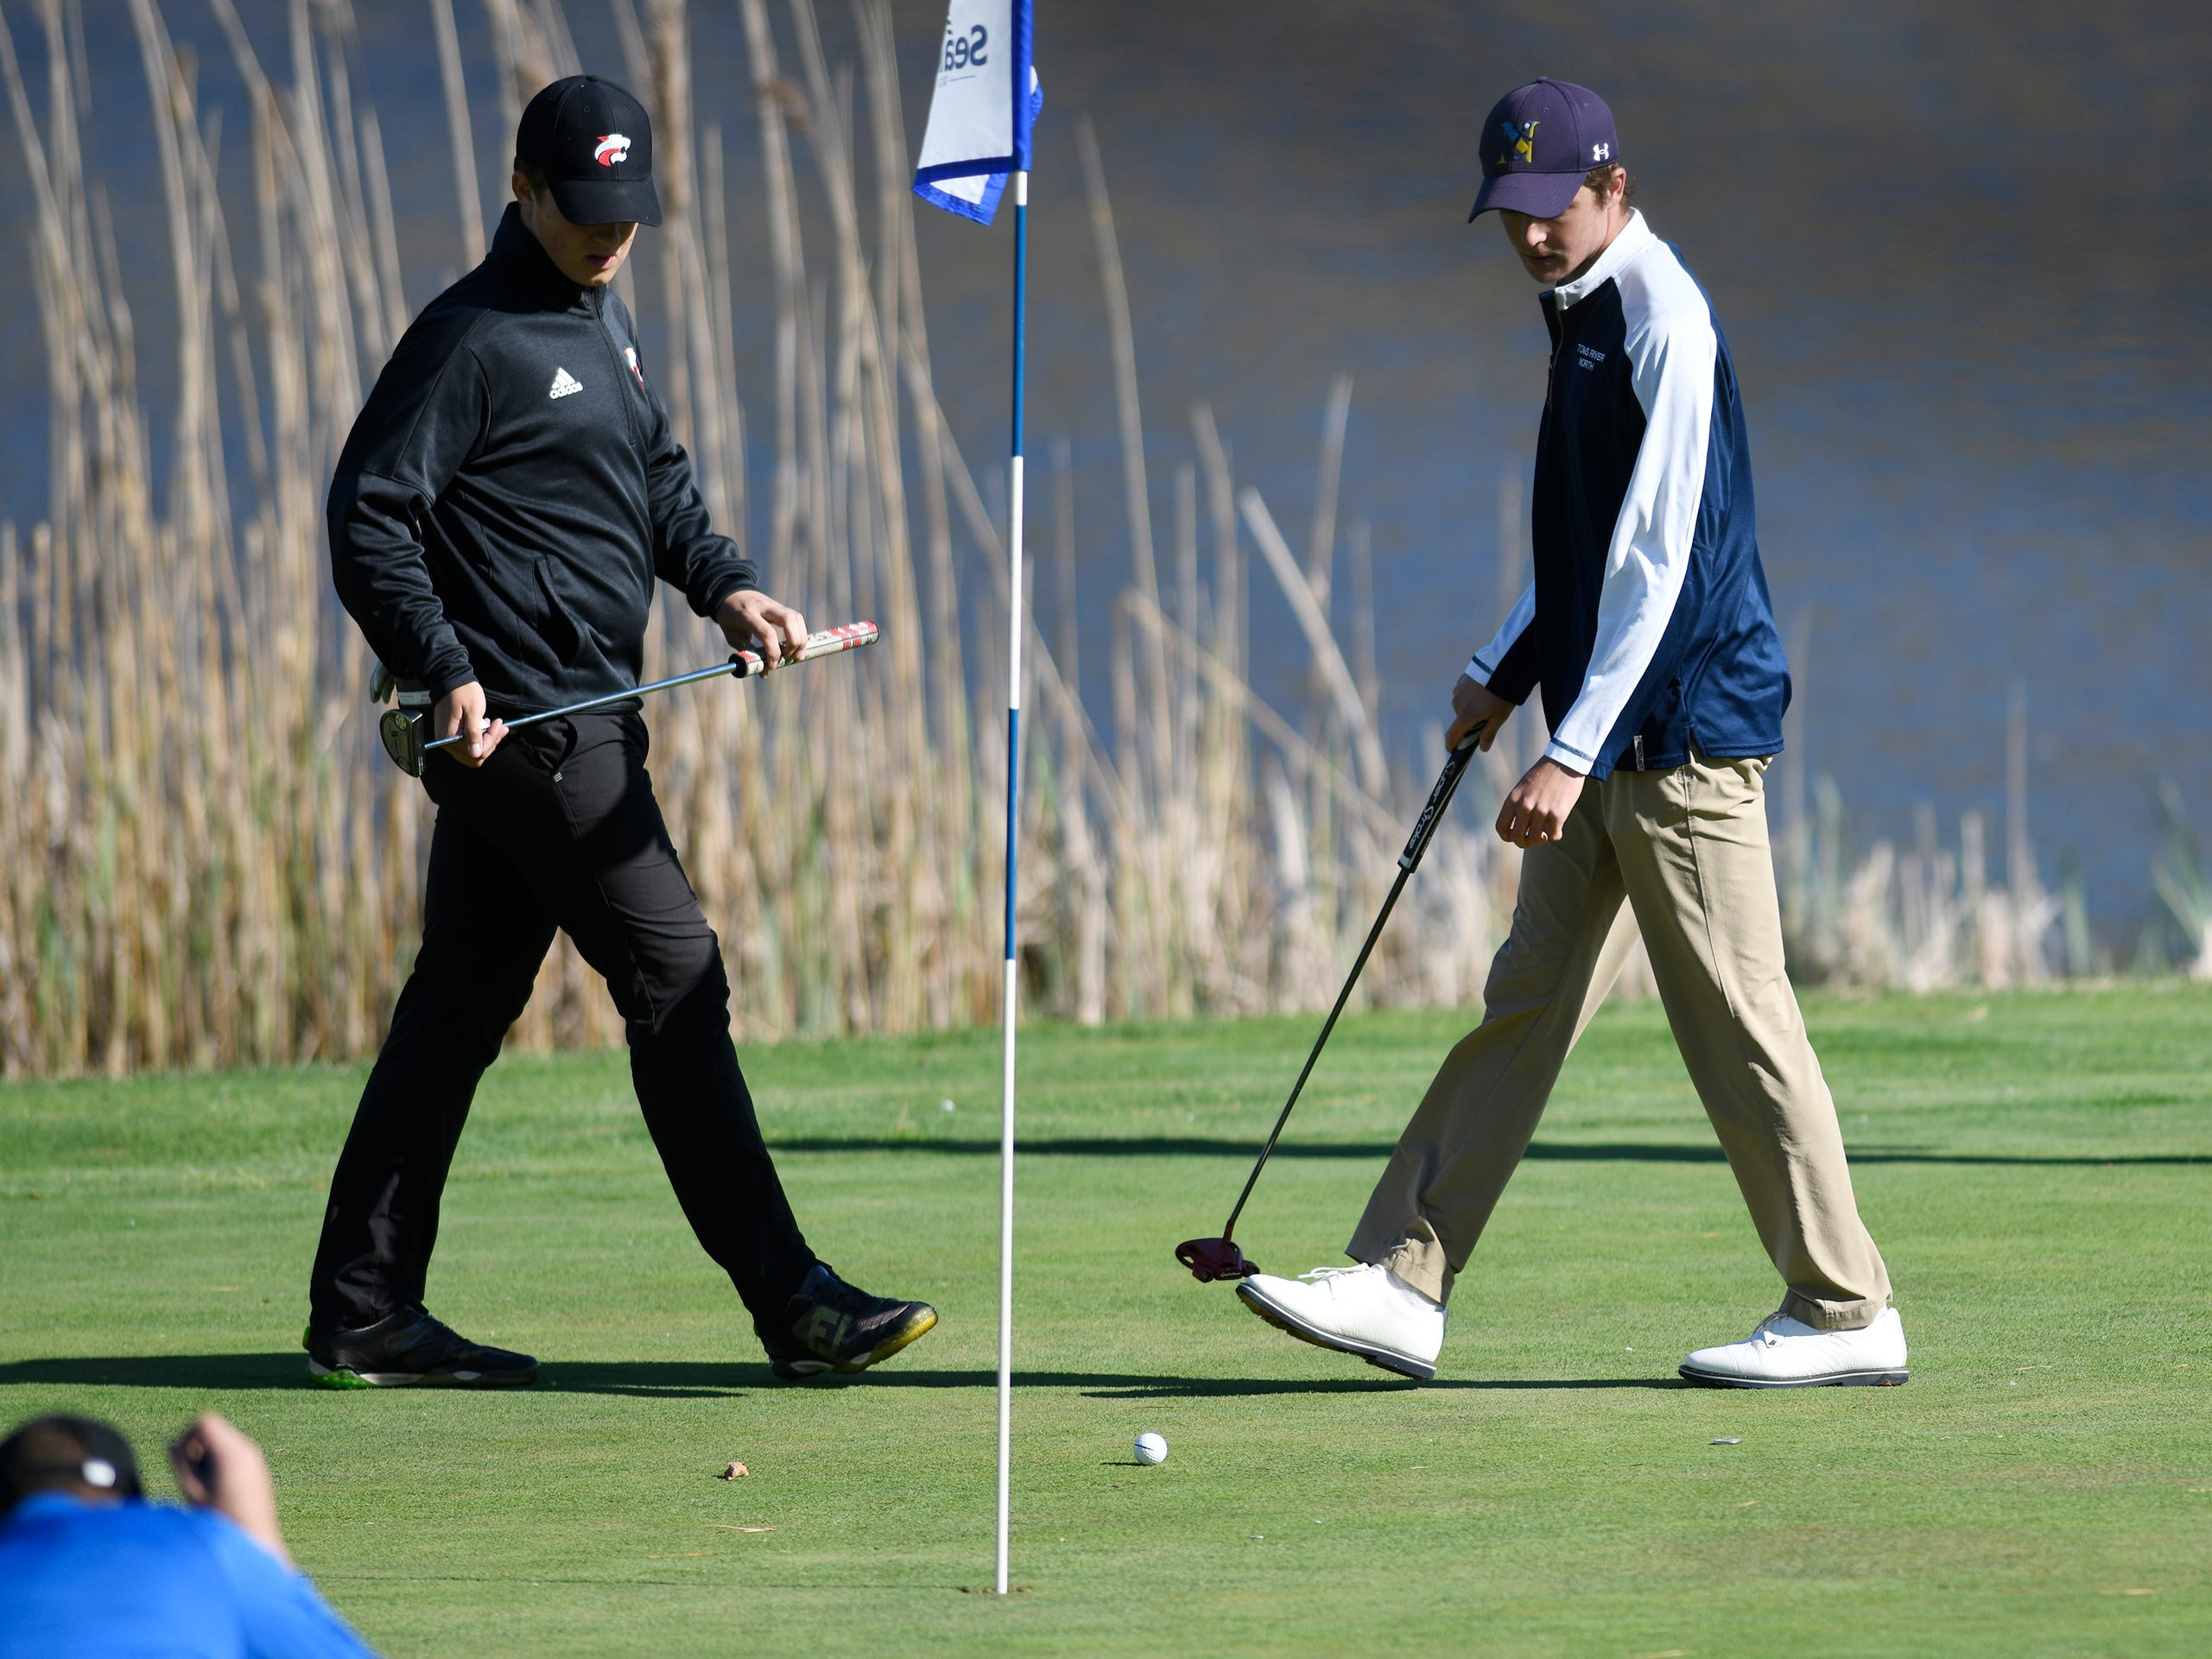 Kyle Rogers of Jackson Memorial, left, and Connor Bekefi of Tome River North competes at the Ocean County Tournament on April 15, 2019,  at Sea Oaks in Little Egg Harbor. Toms River North's Connor Bekefi emerged as the individual champion with a 3-over-par 75, four shots better than teammate Leo Kane. Toms River North successfully defended its team title, posting a total of 336, which was 18 shots better than Southern. Brick Memorial finished third.